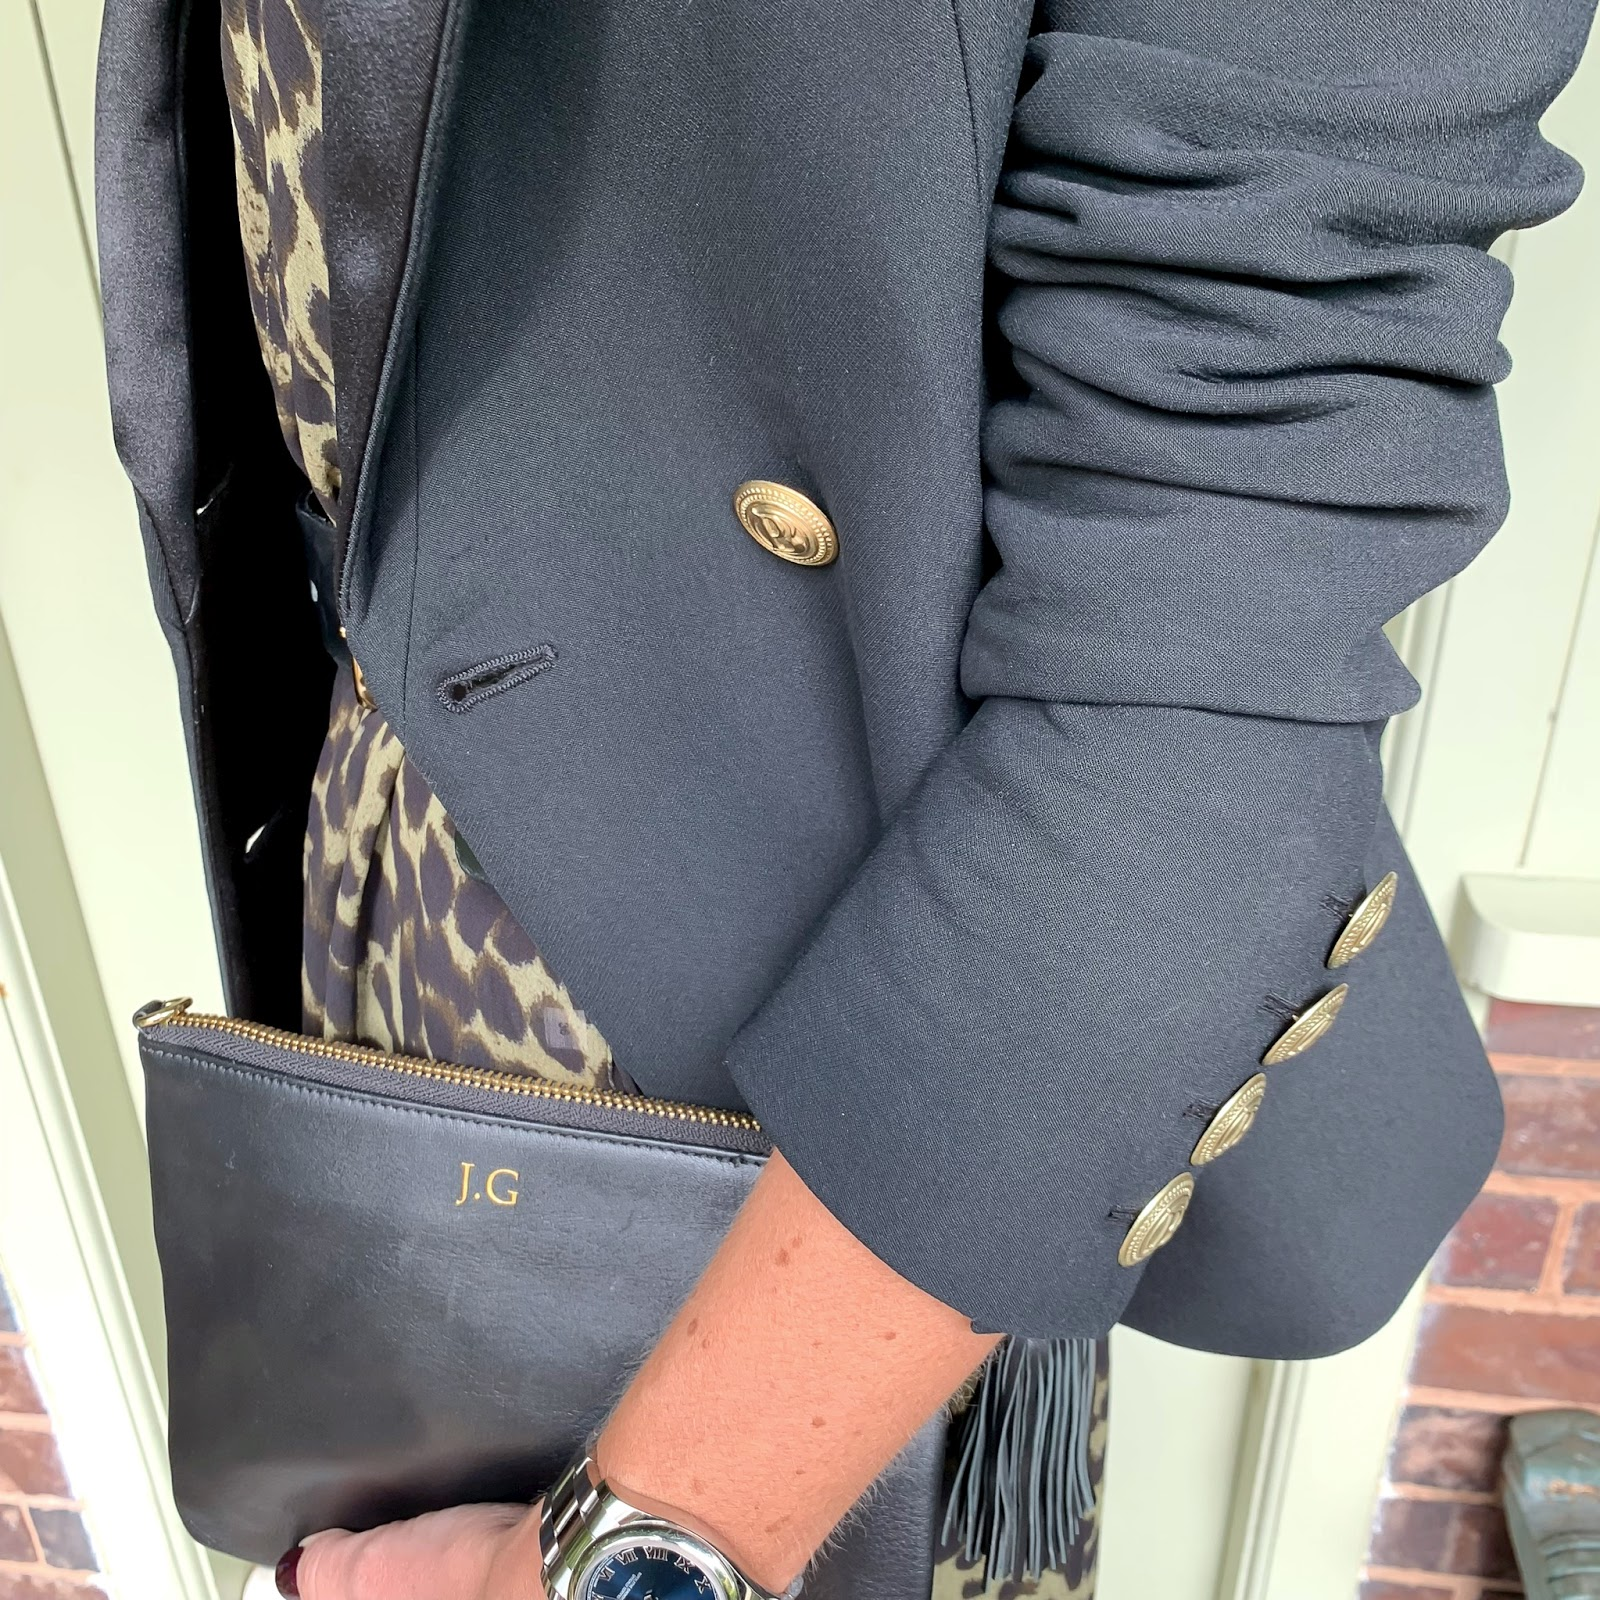 my midlife fashion, isabel marant etoile leopard print maxi dress, sole bliss carmen court shoes, aurora london willow bag, and other stories wide buckle waist belt, pierre balmain tuxedo jacket